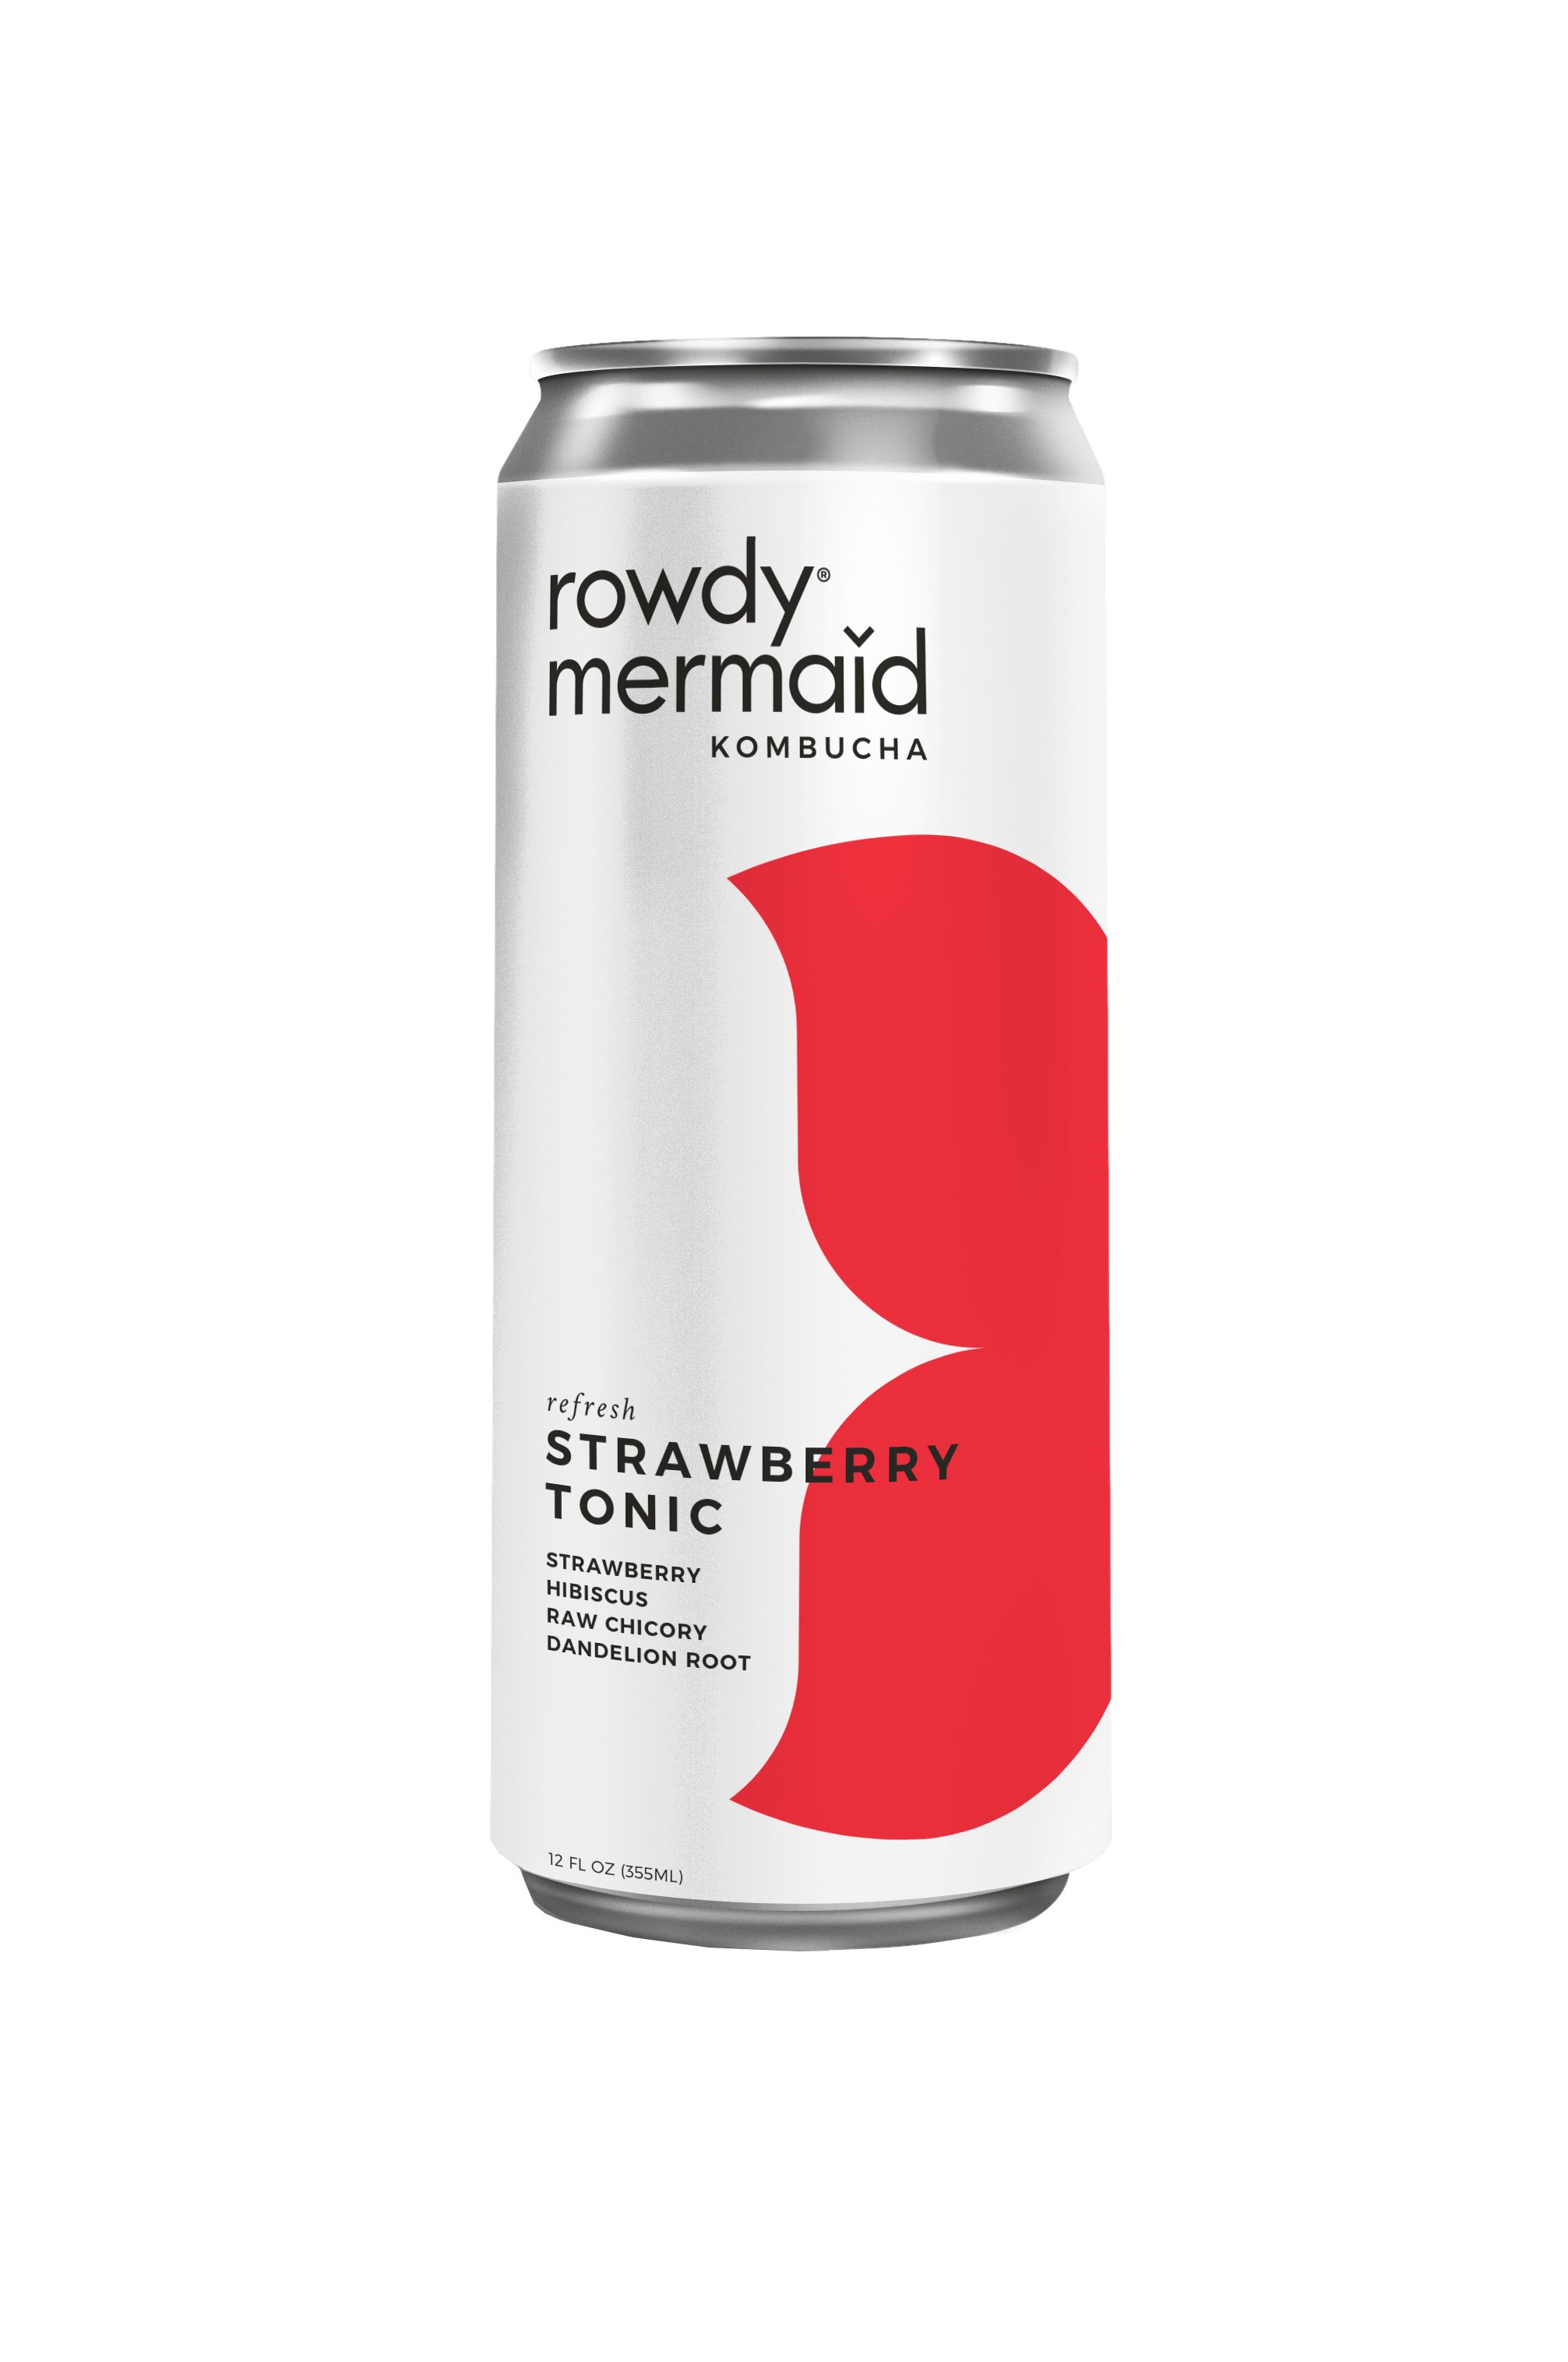 rowdy-mermaid-kombucha